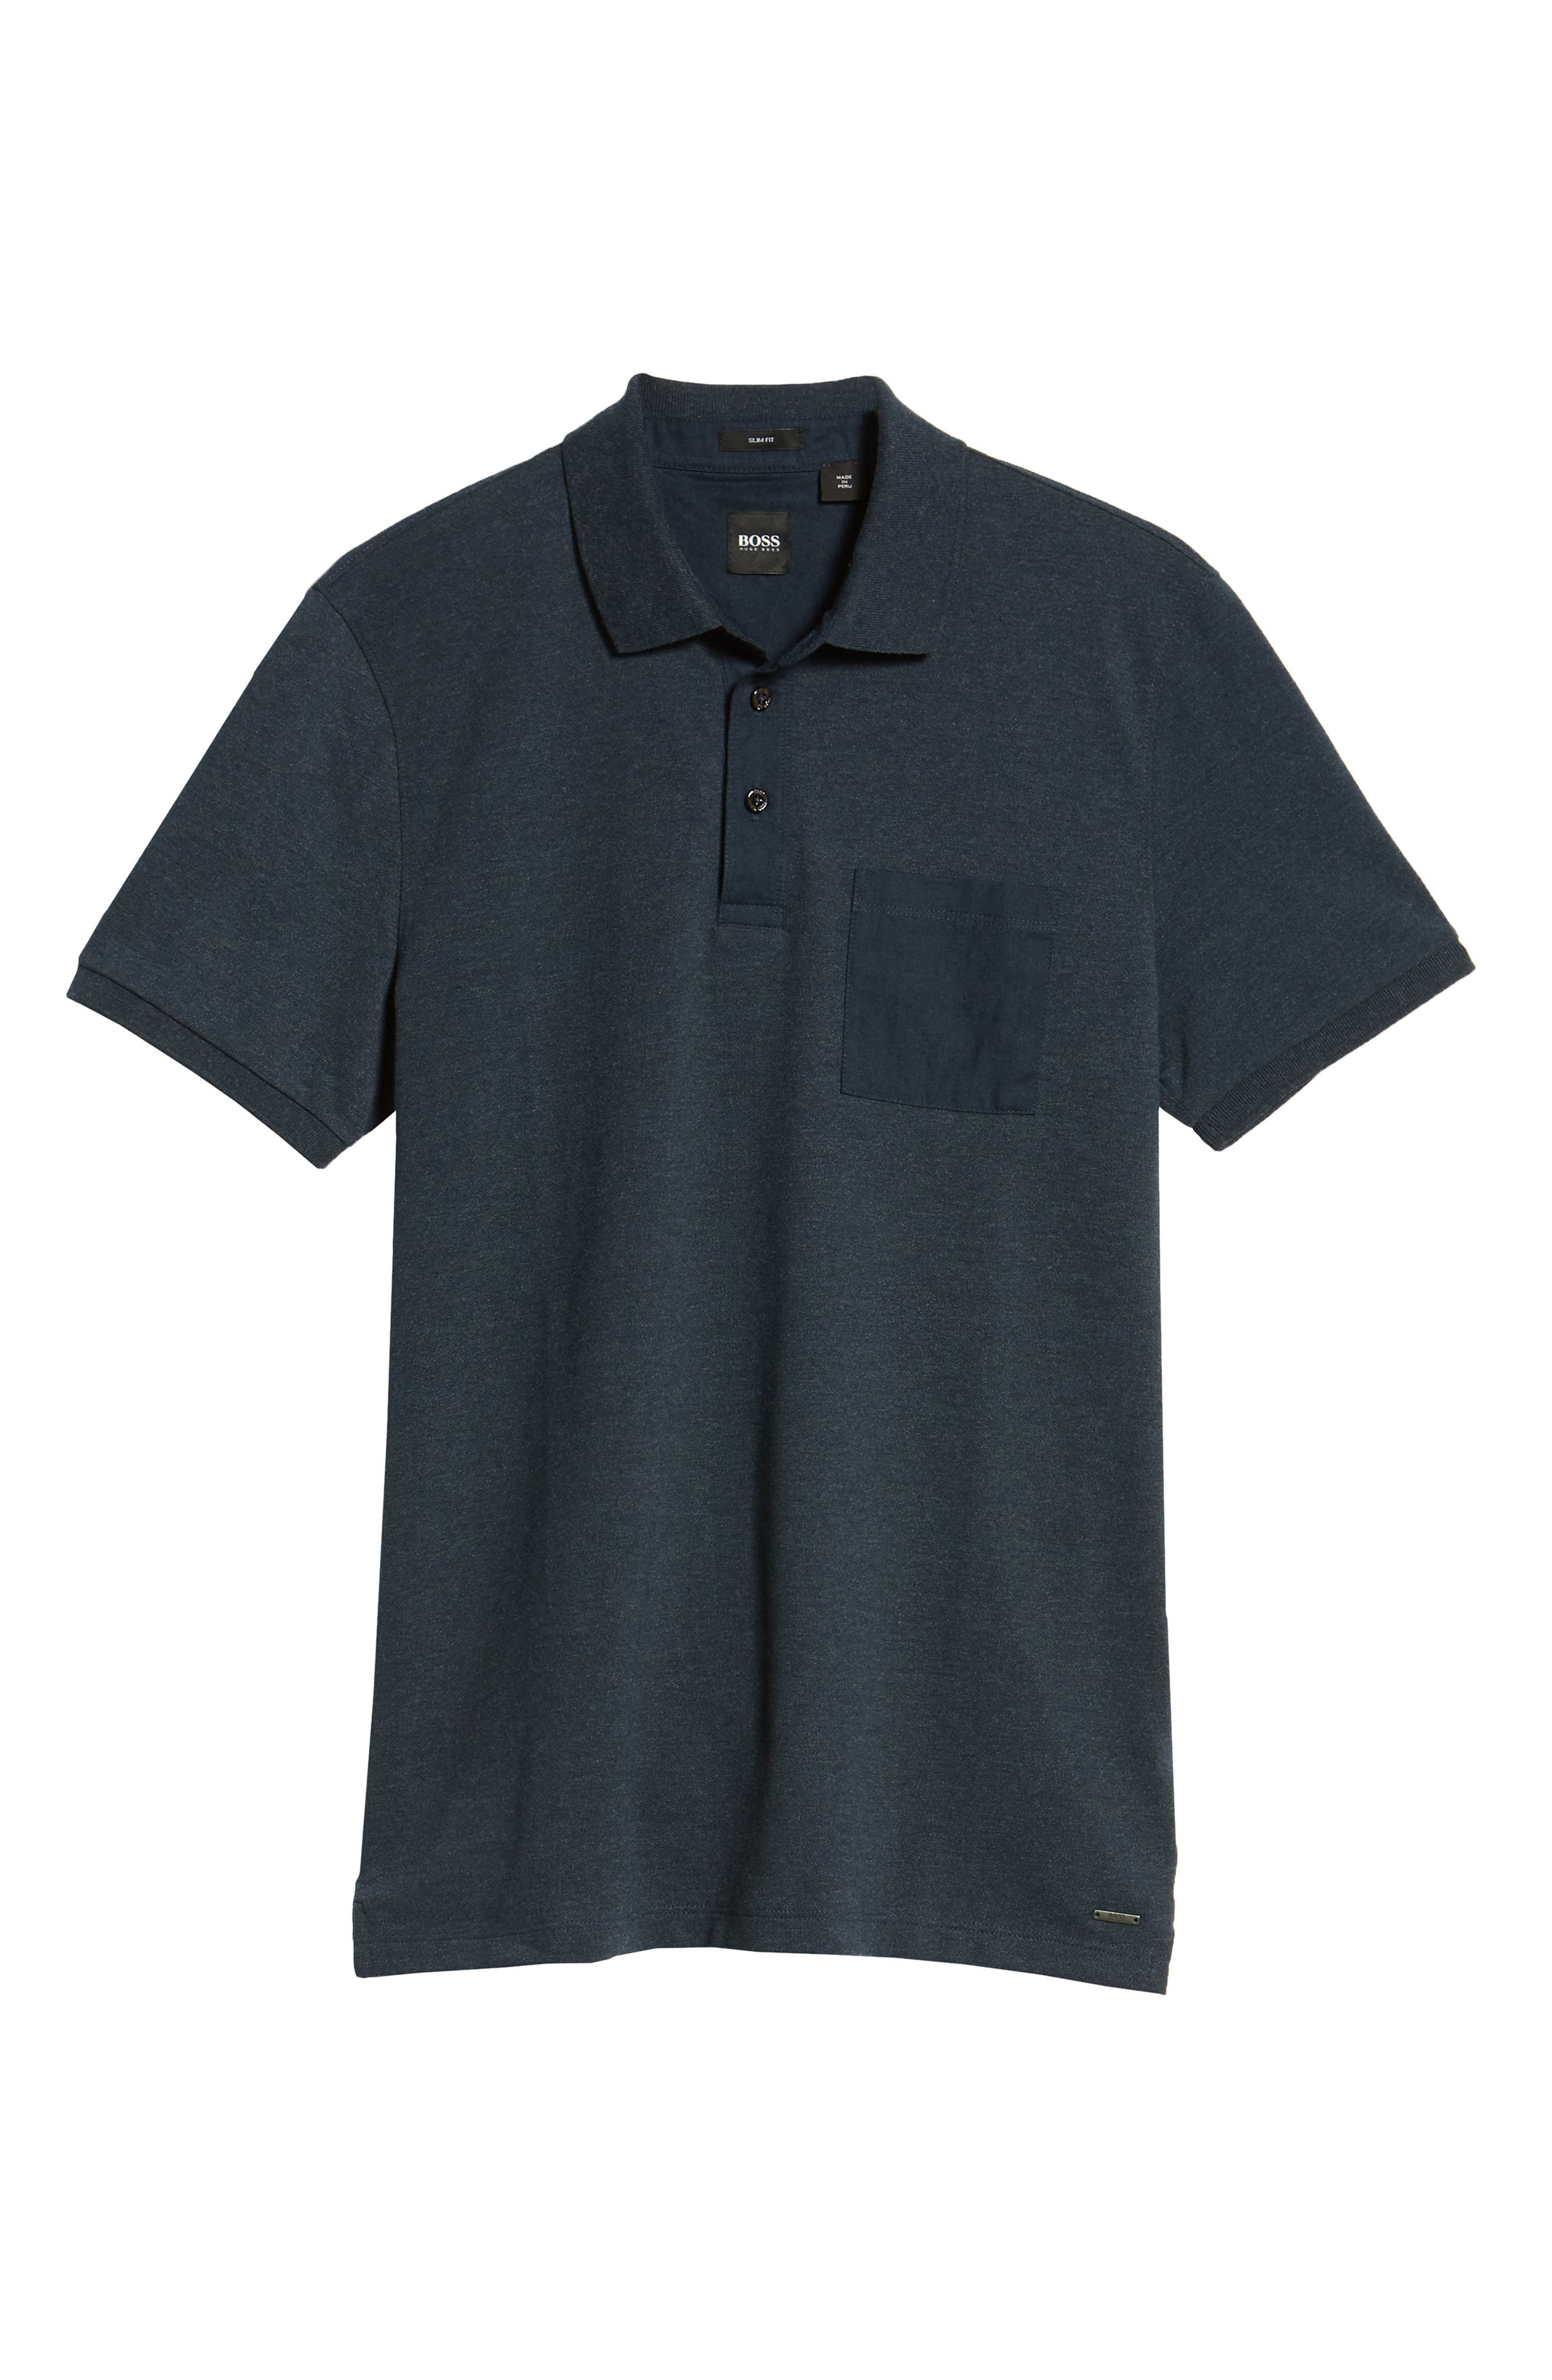 Penrose Polo Shirt,                             Alternate thumbnail 6, color,                             410